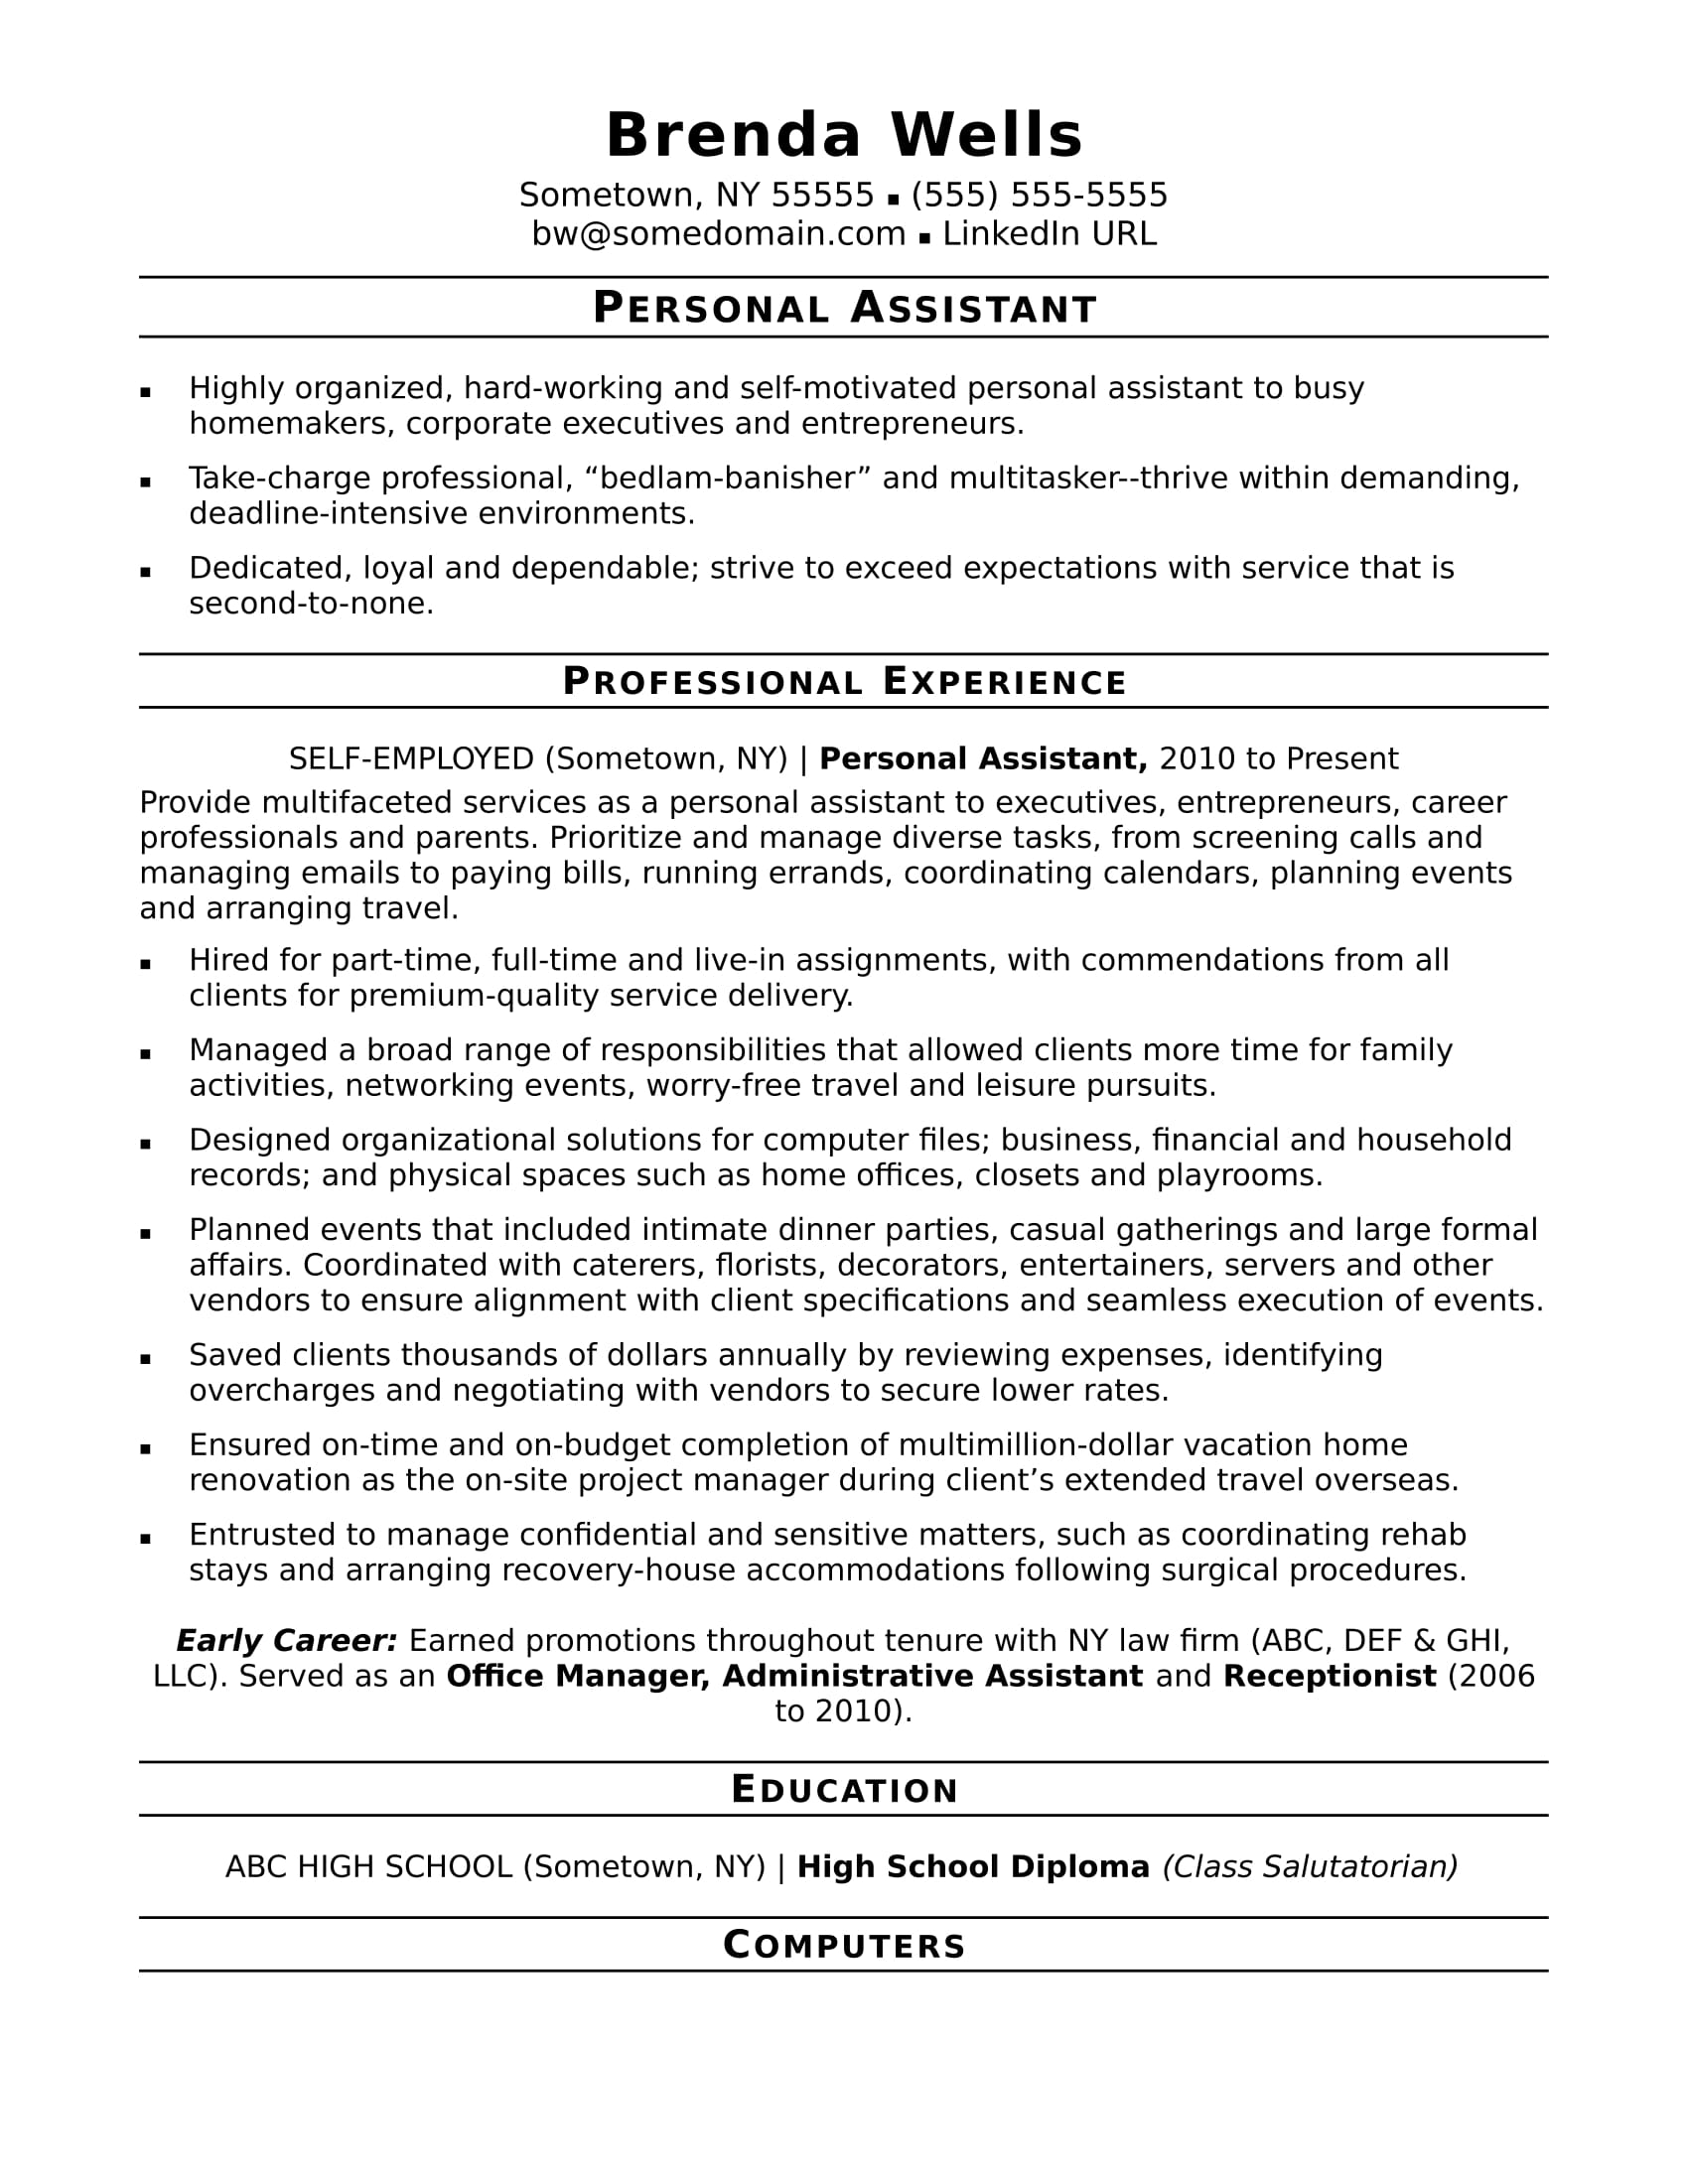 personal assistant resume sample monster law school template format for manager Resume Law School Resume Template Download